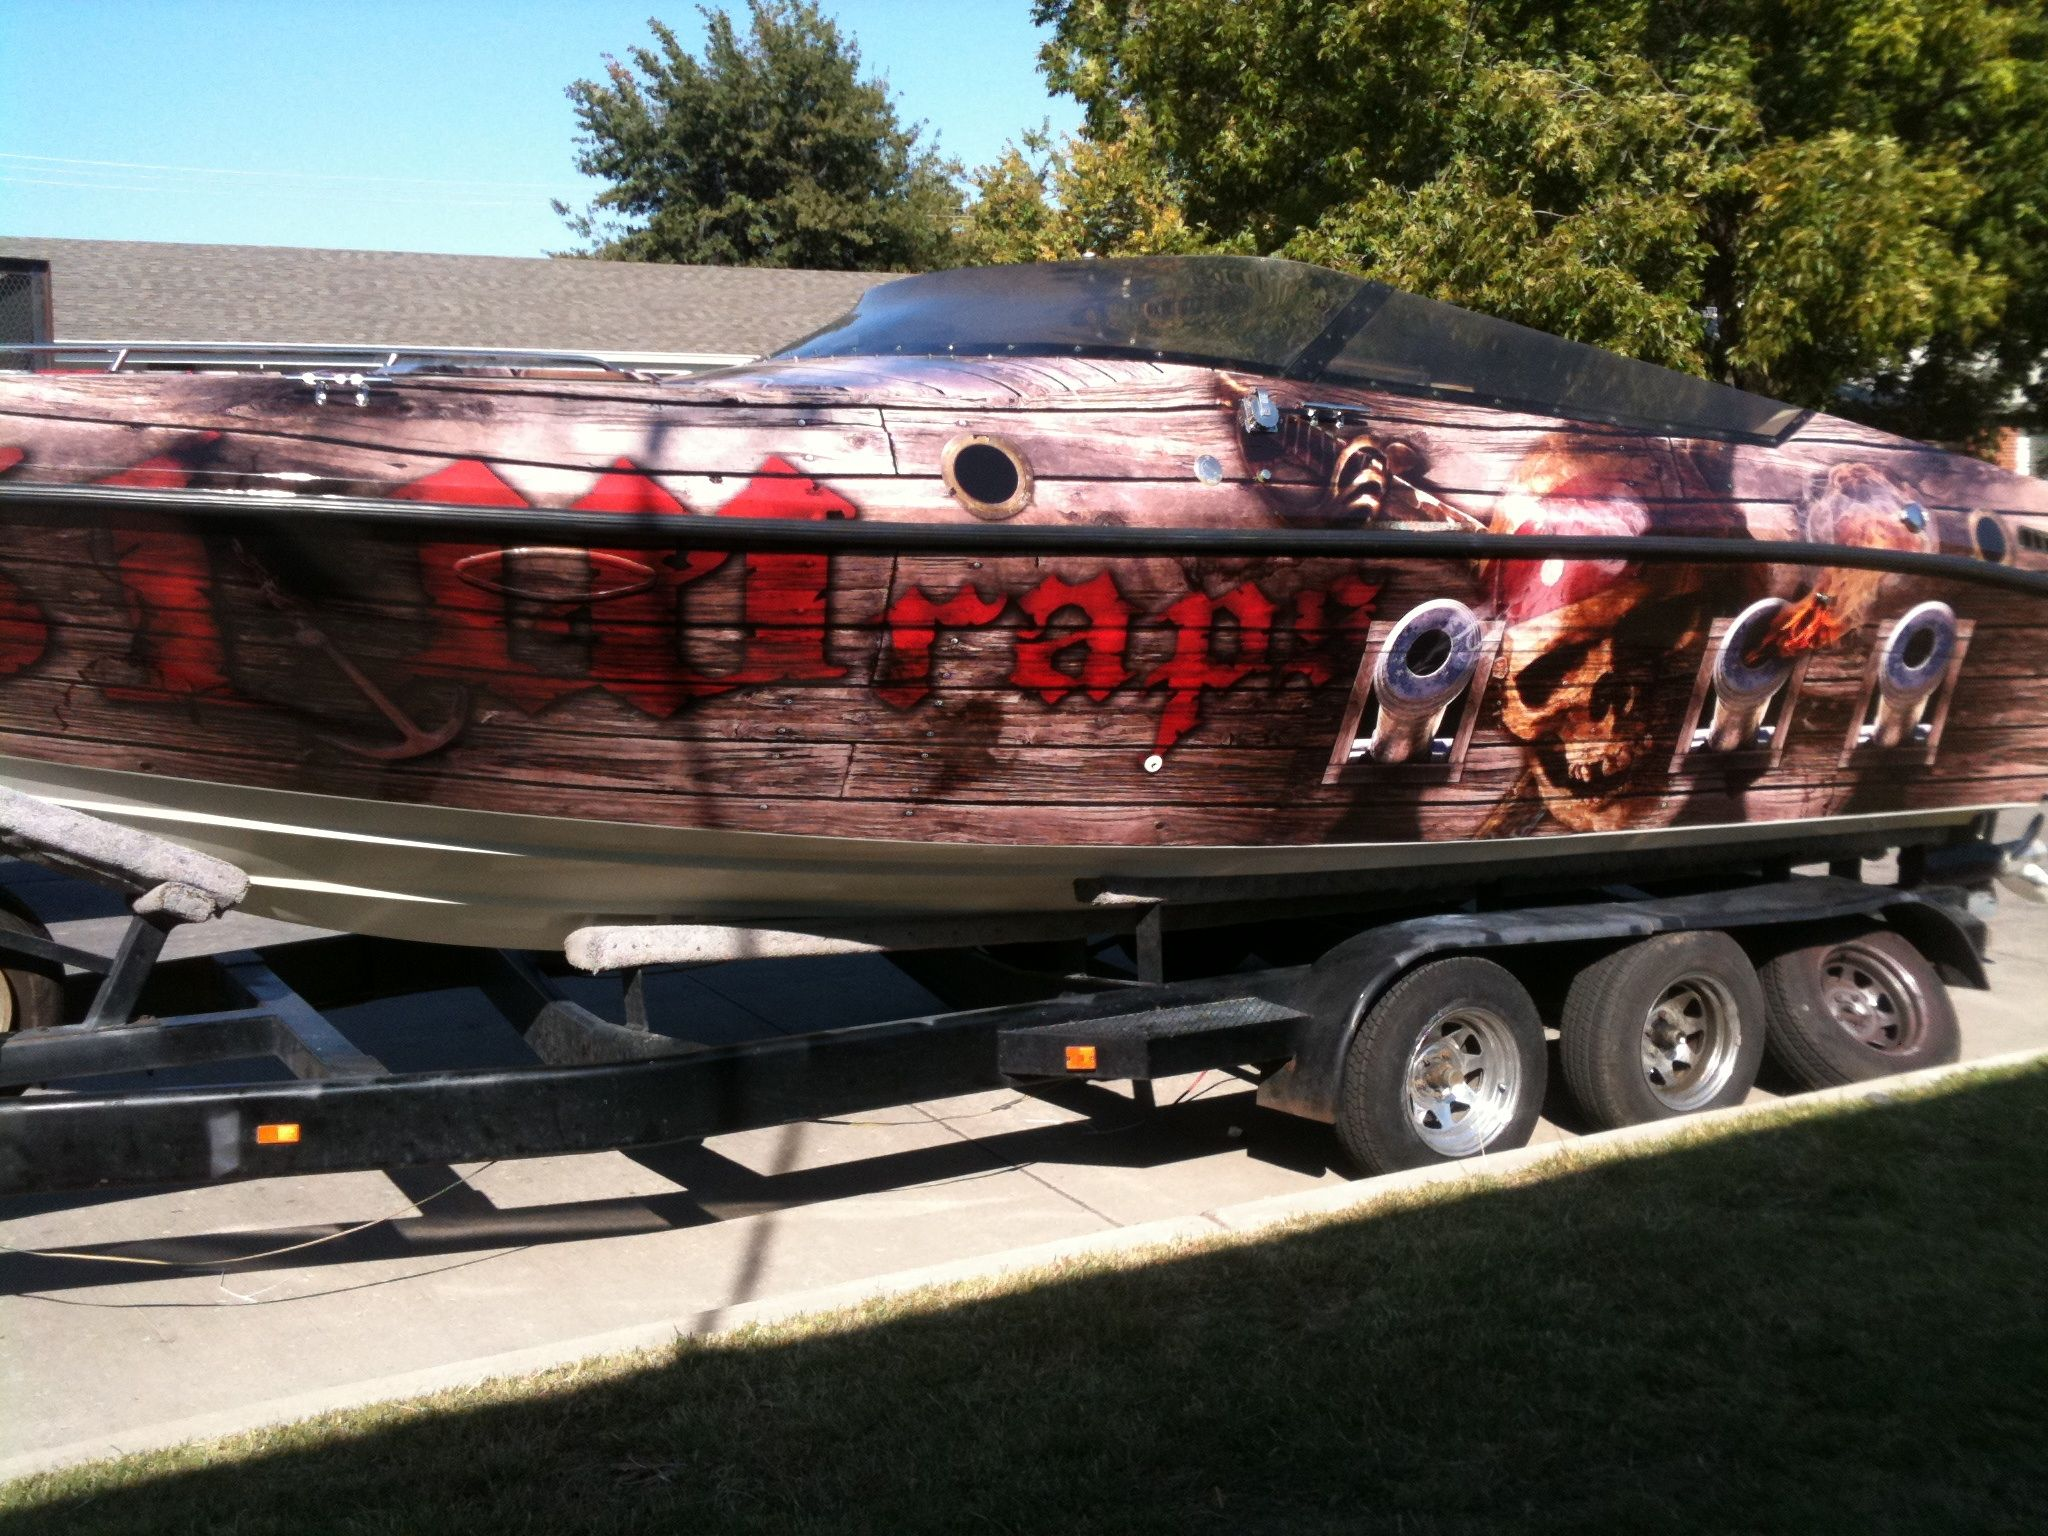 Pirate Ship Boat Wrap By Wraps Boat Wraps Pinterest Boat Wraps - Sporting boat decalsbest boat wraps custom vinyl images on pinterest boat wraps